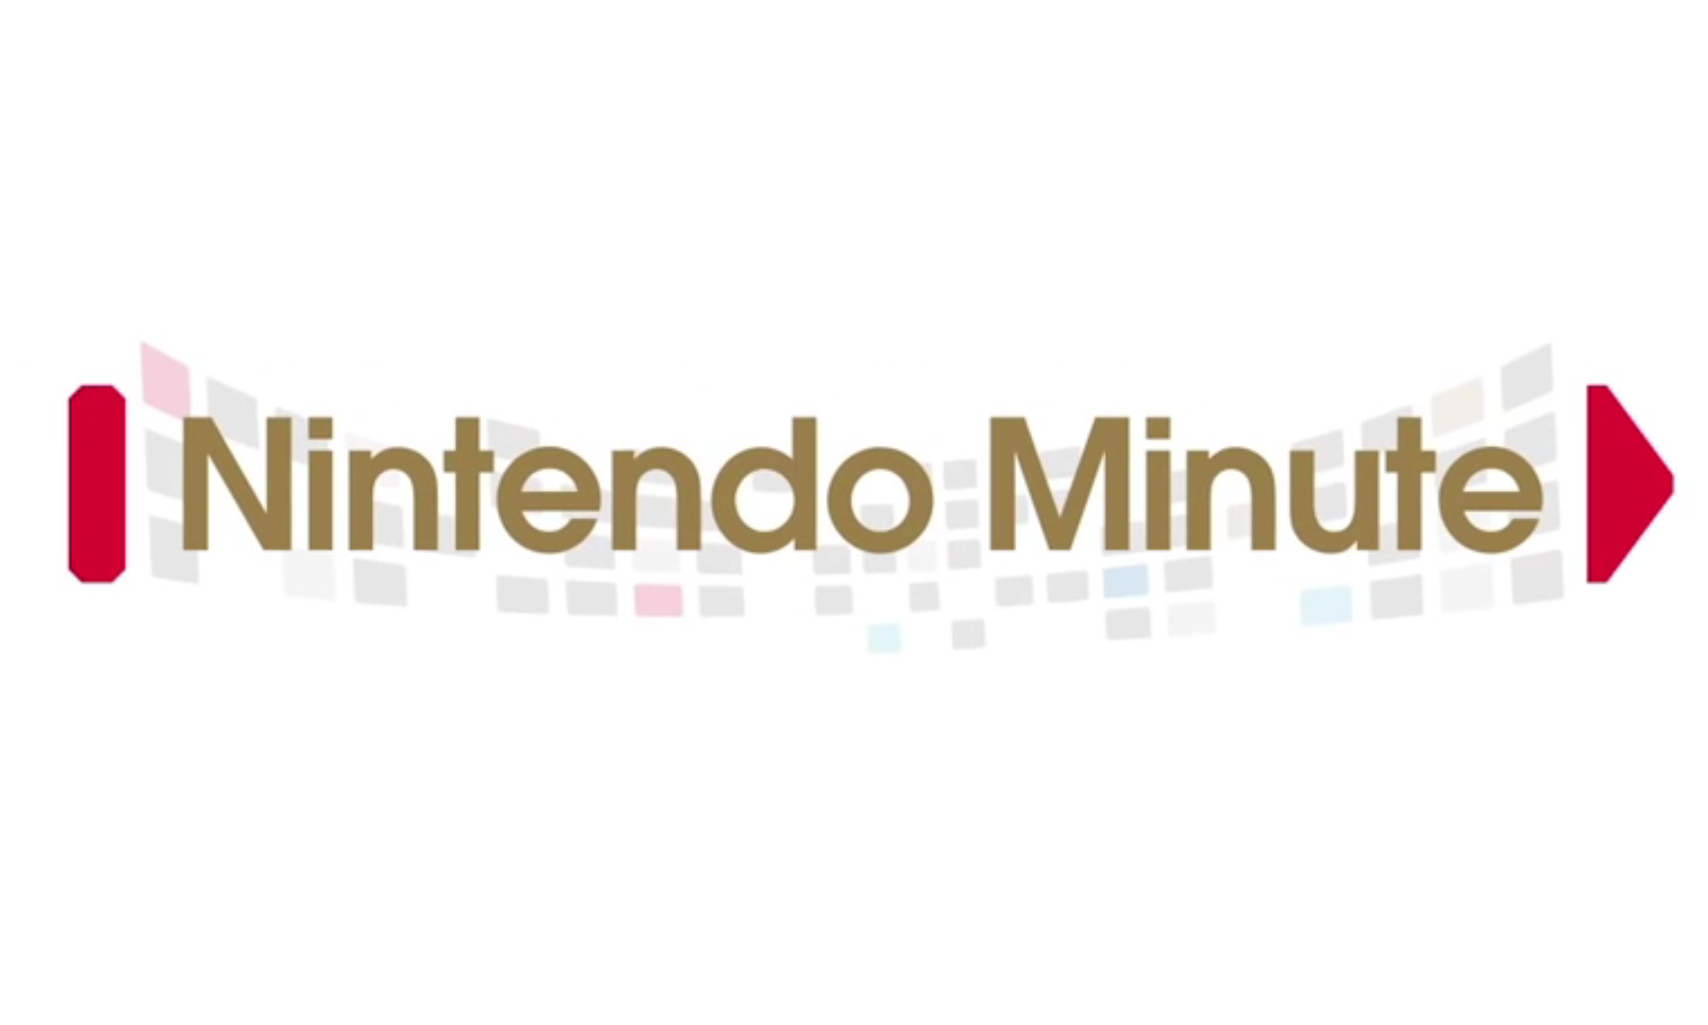 Video: Nintendo Minute – New Nintendo 3DS XL first look